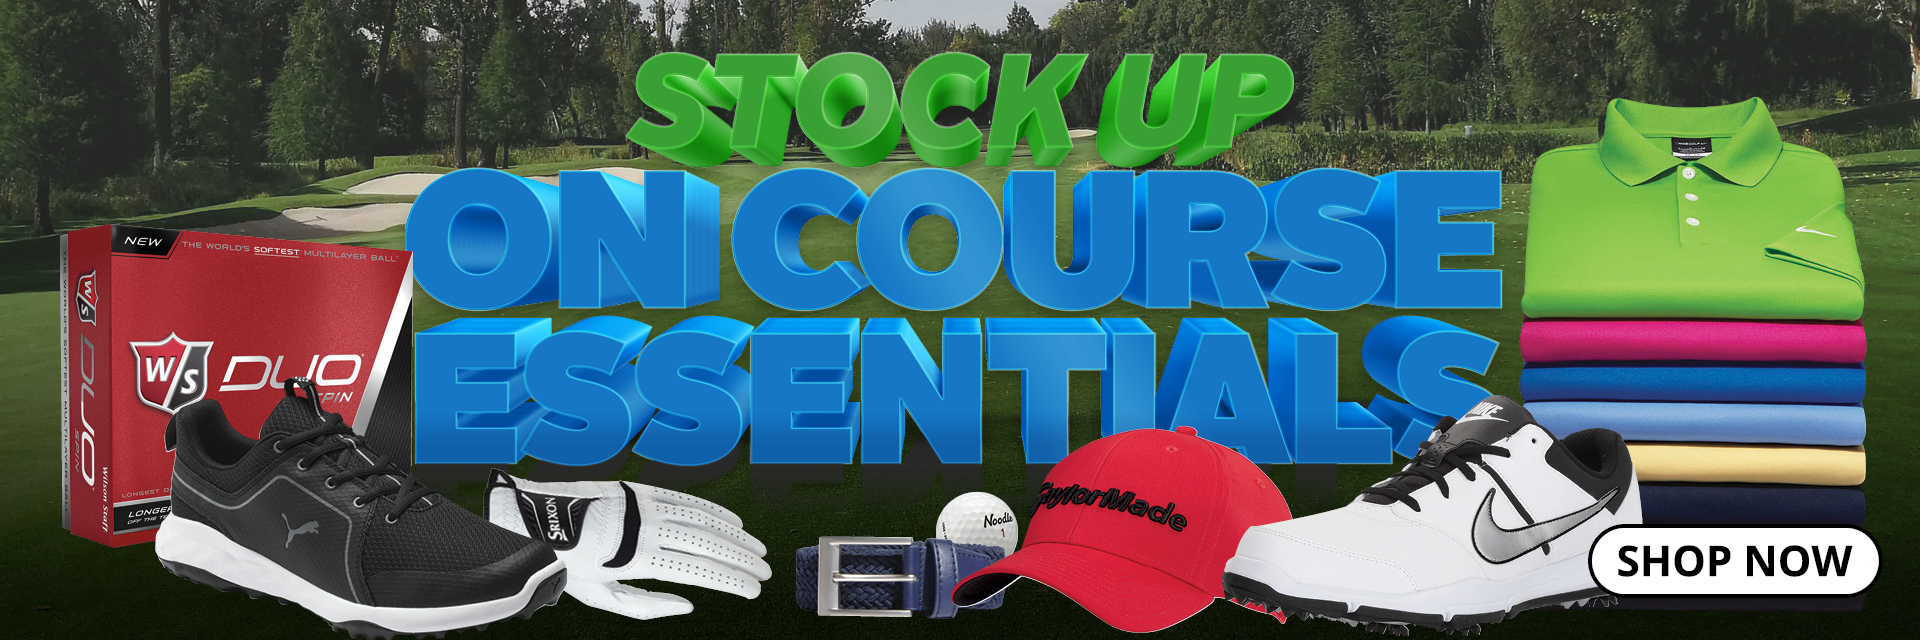 On Course Essentials